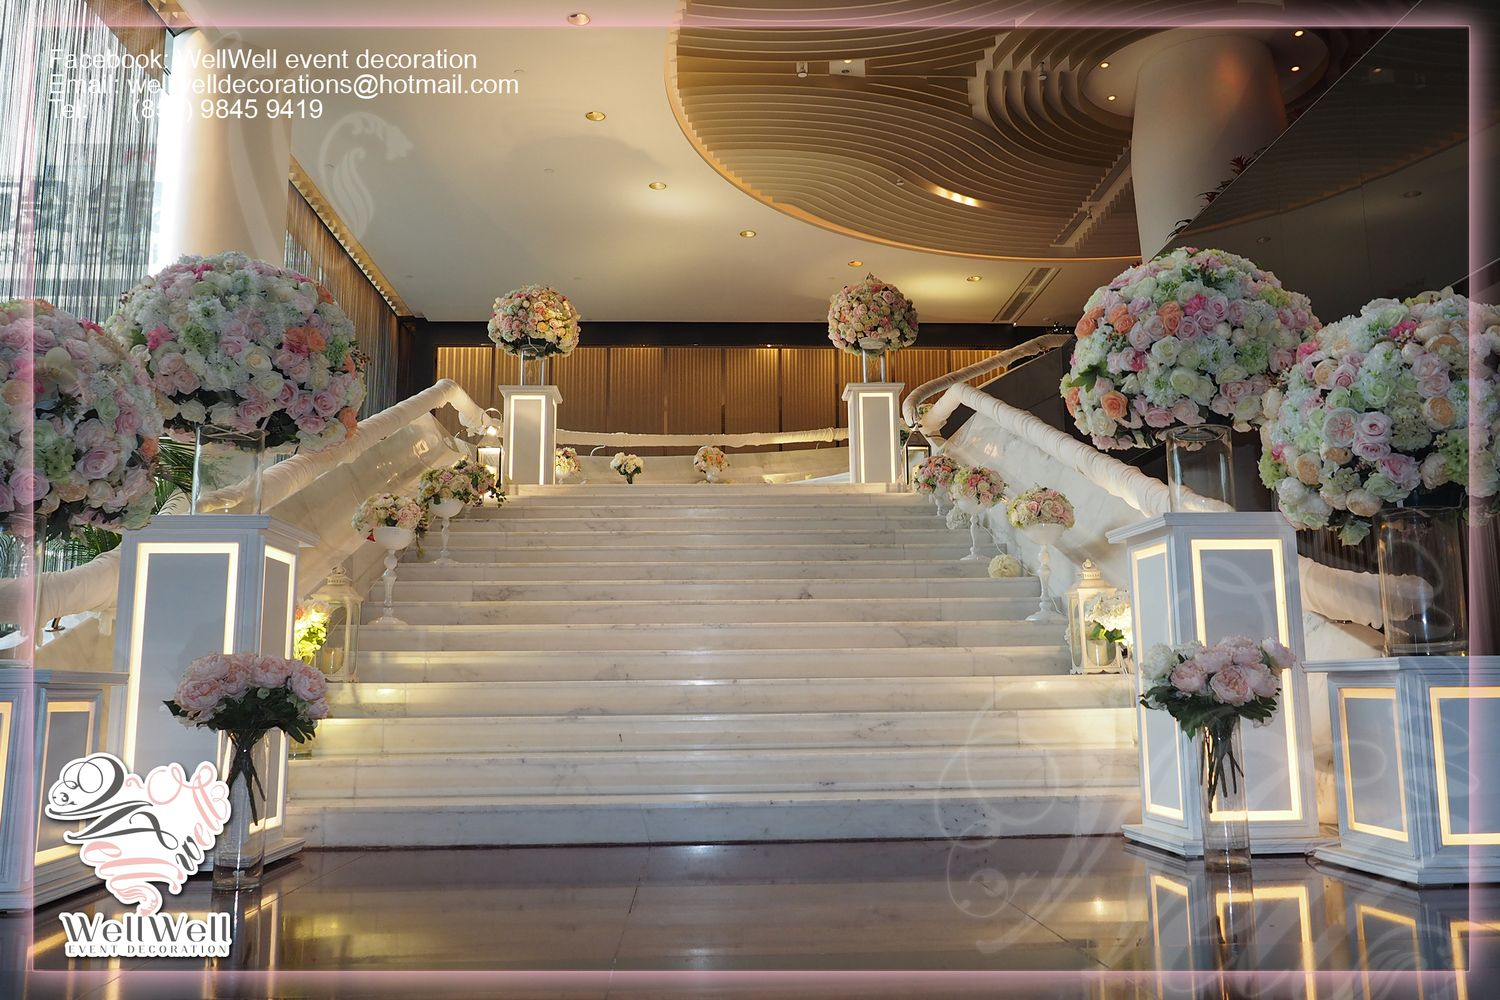 Outdoor wedding decoration hong kong images wedding dress outdoor wedding decoration hong kong images wedding dress outdoor wedding decoration hong kong images wedding dress junglespirit Choice Image